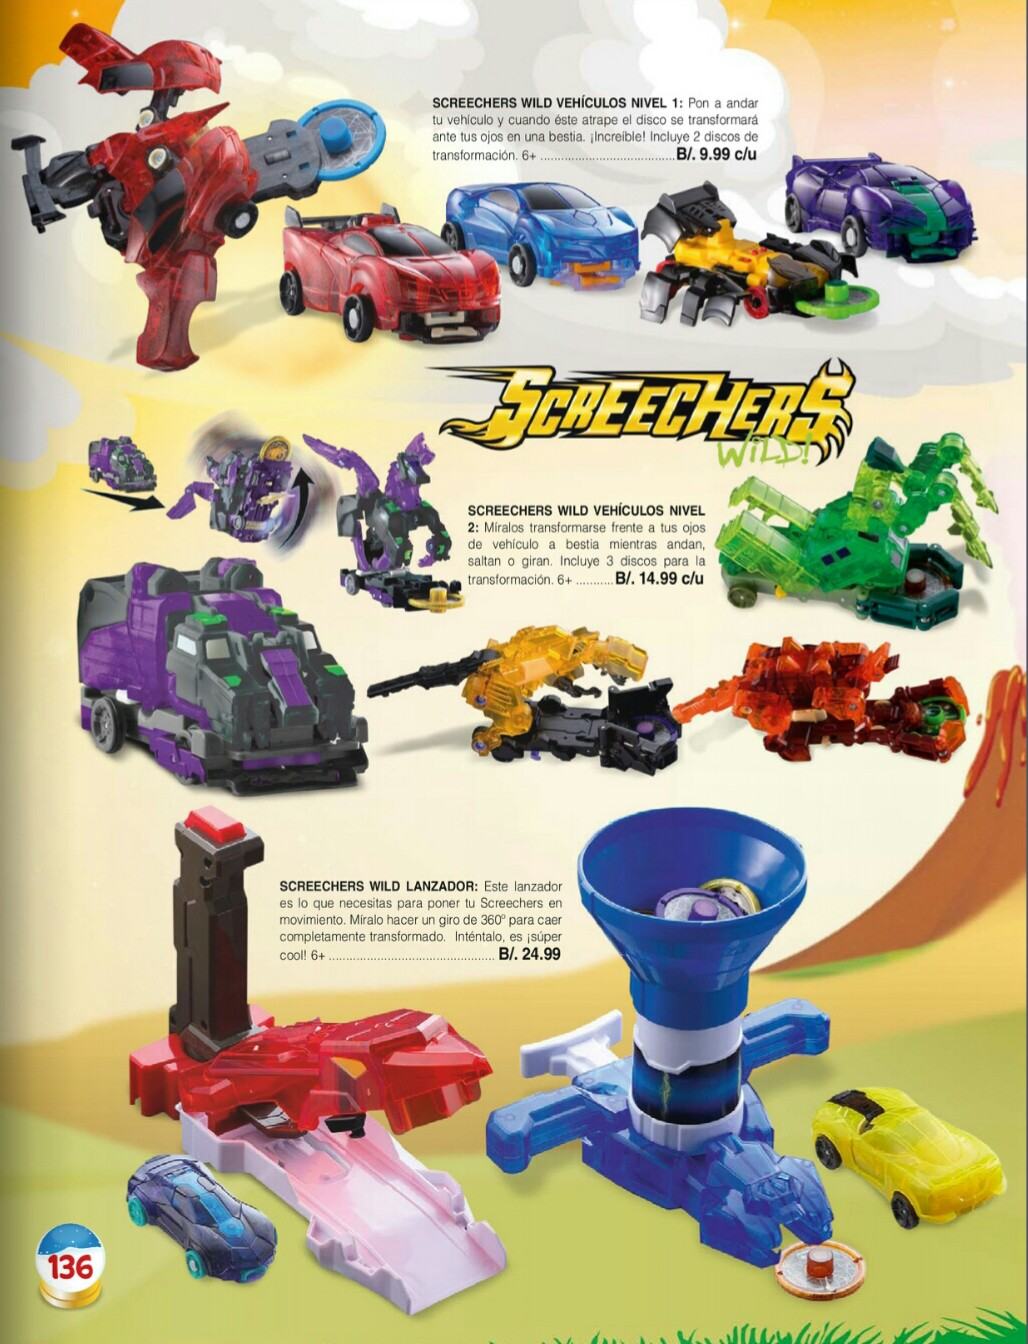 Catalogo juguetes Stivie toys 2018 p136